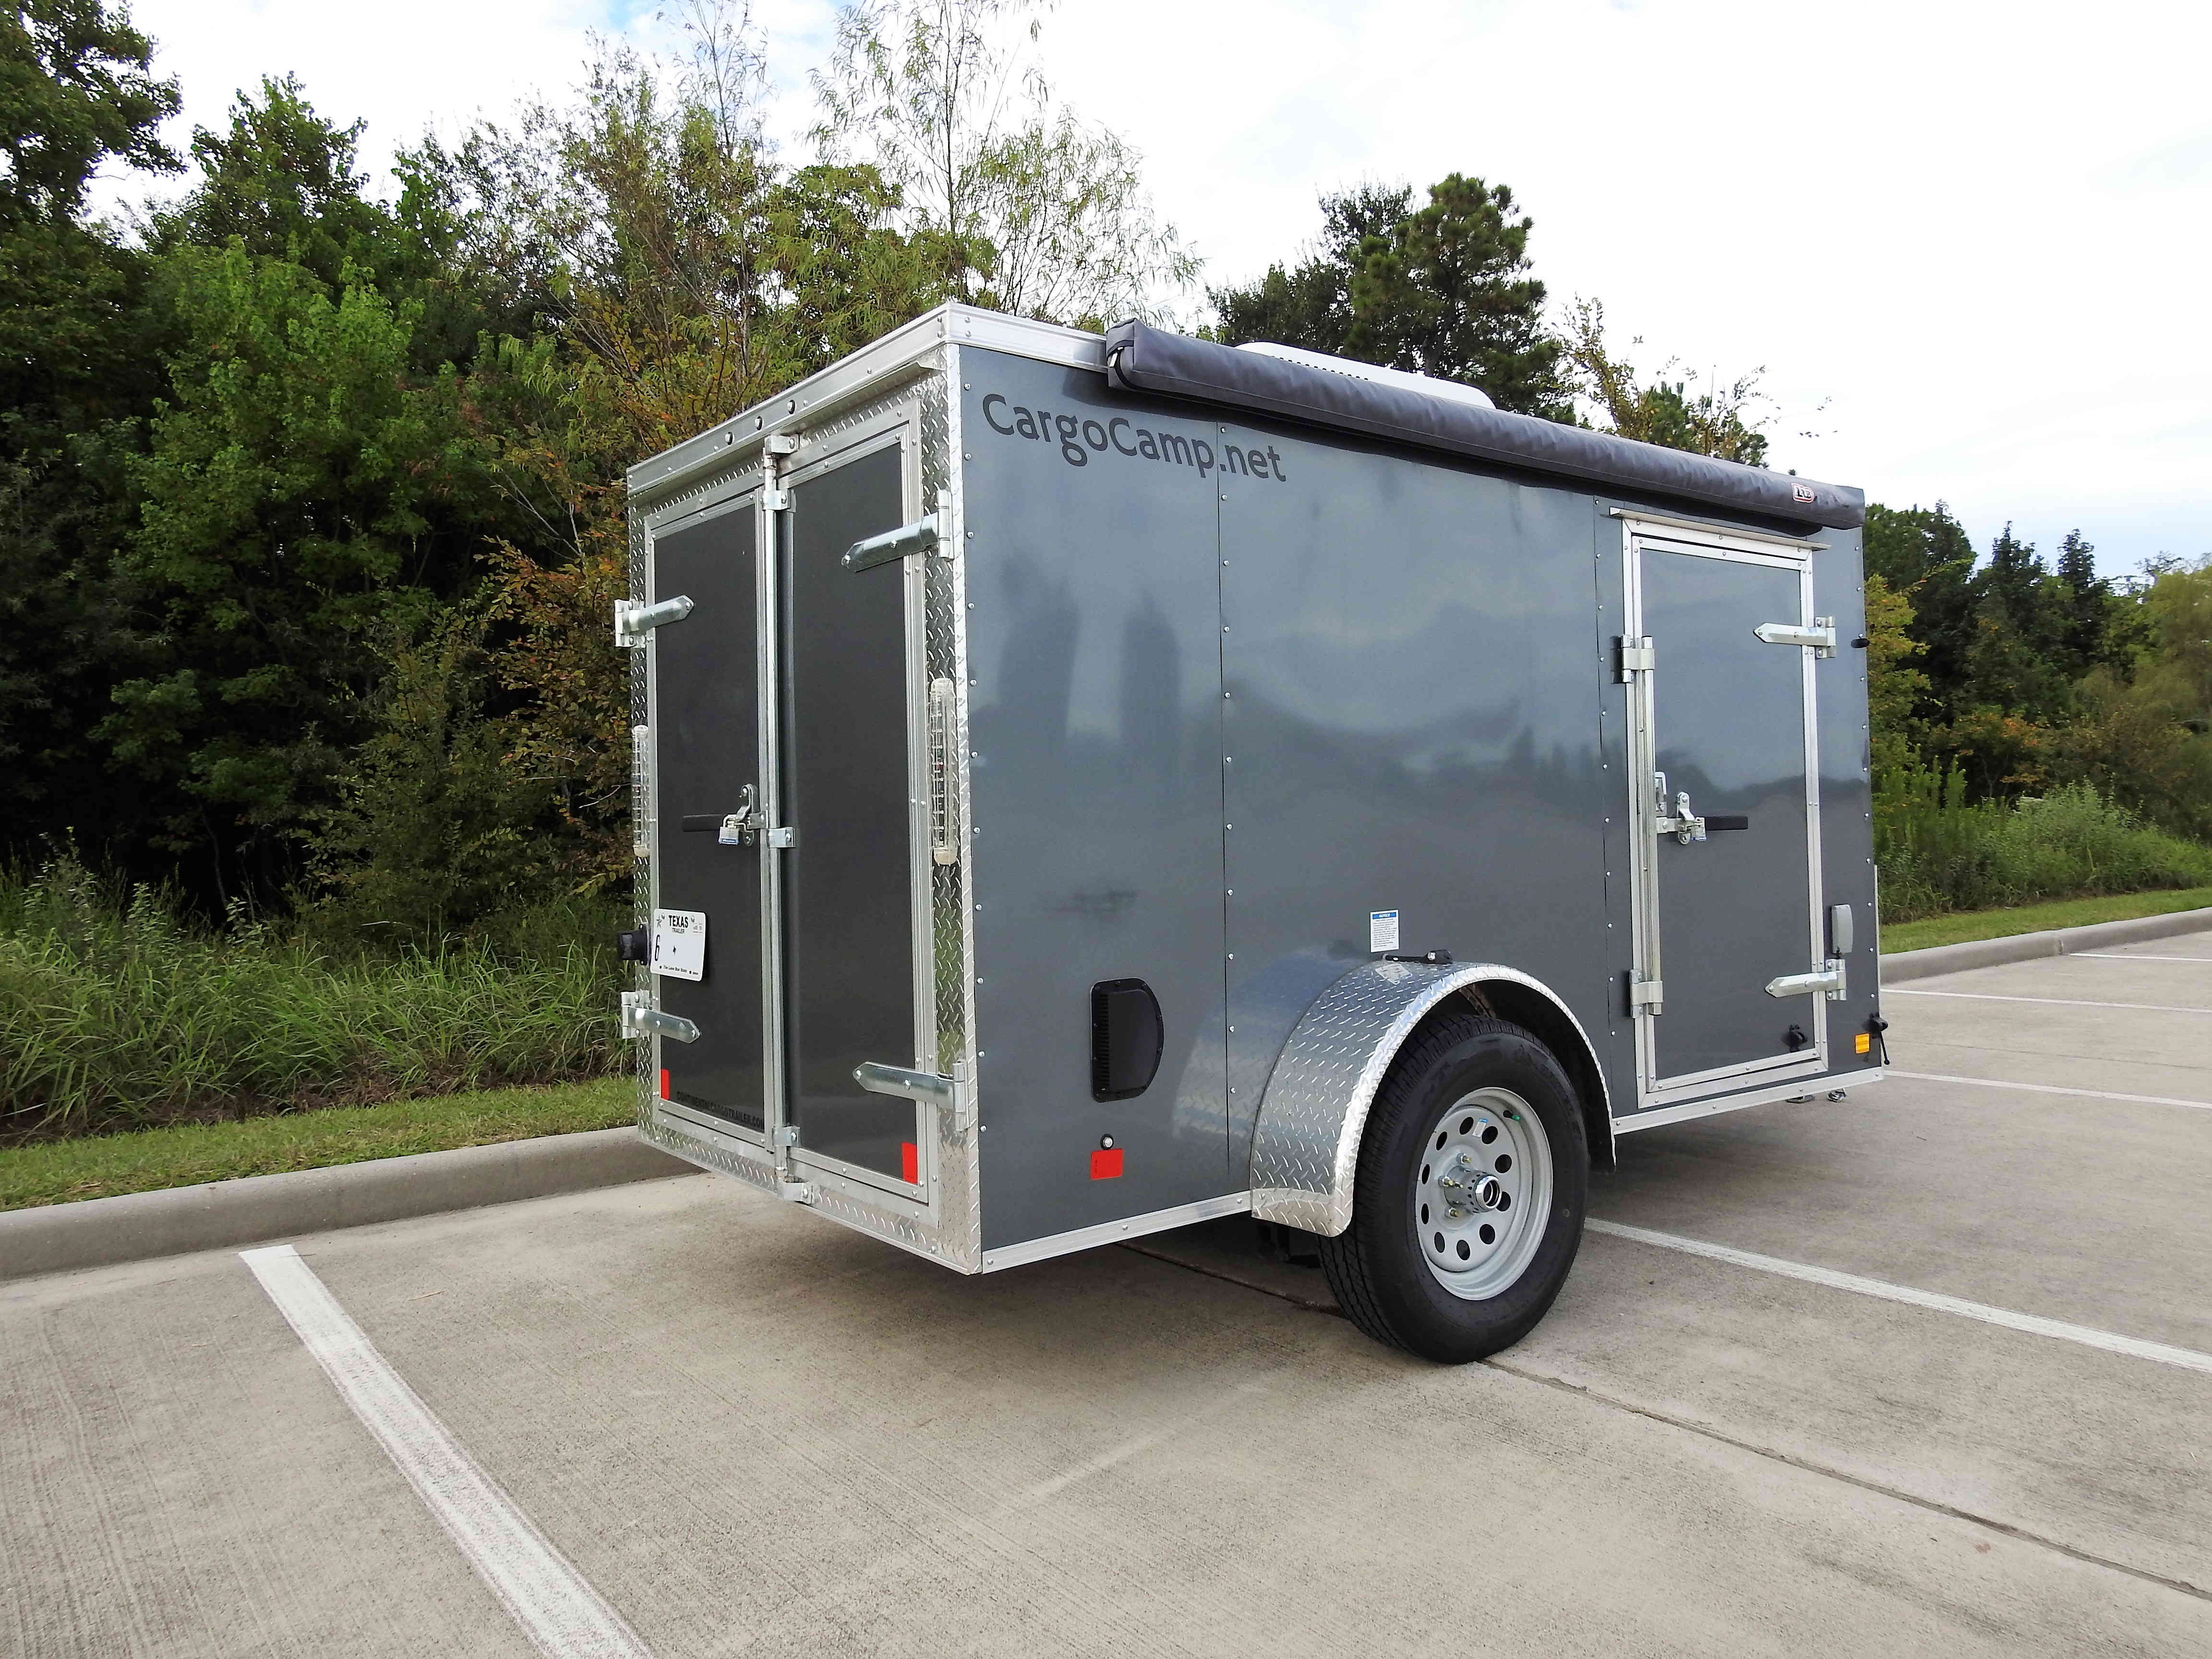 small travel trailers - Cargo Camper